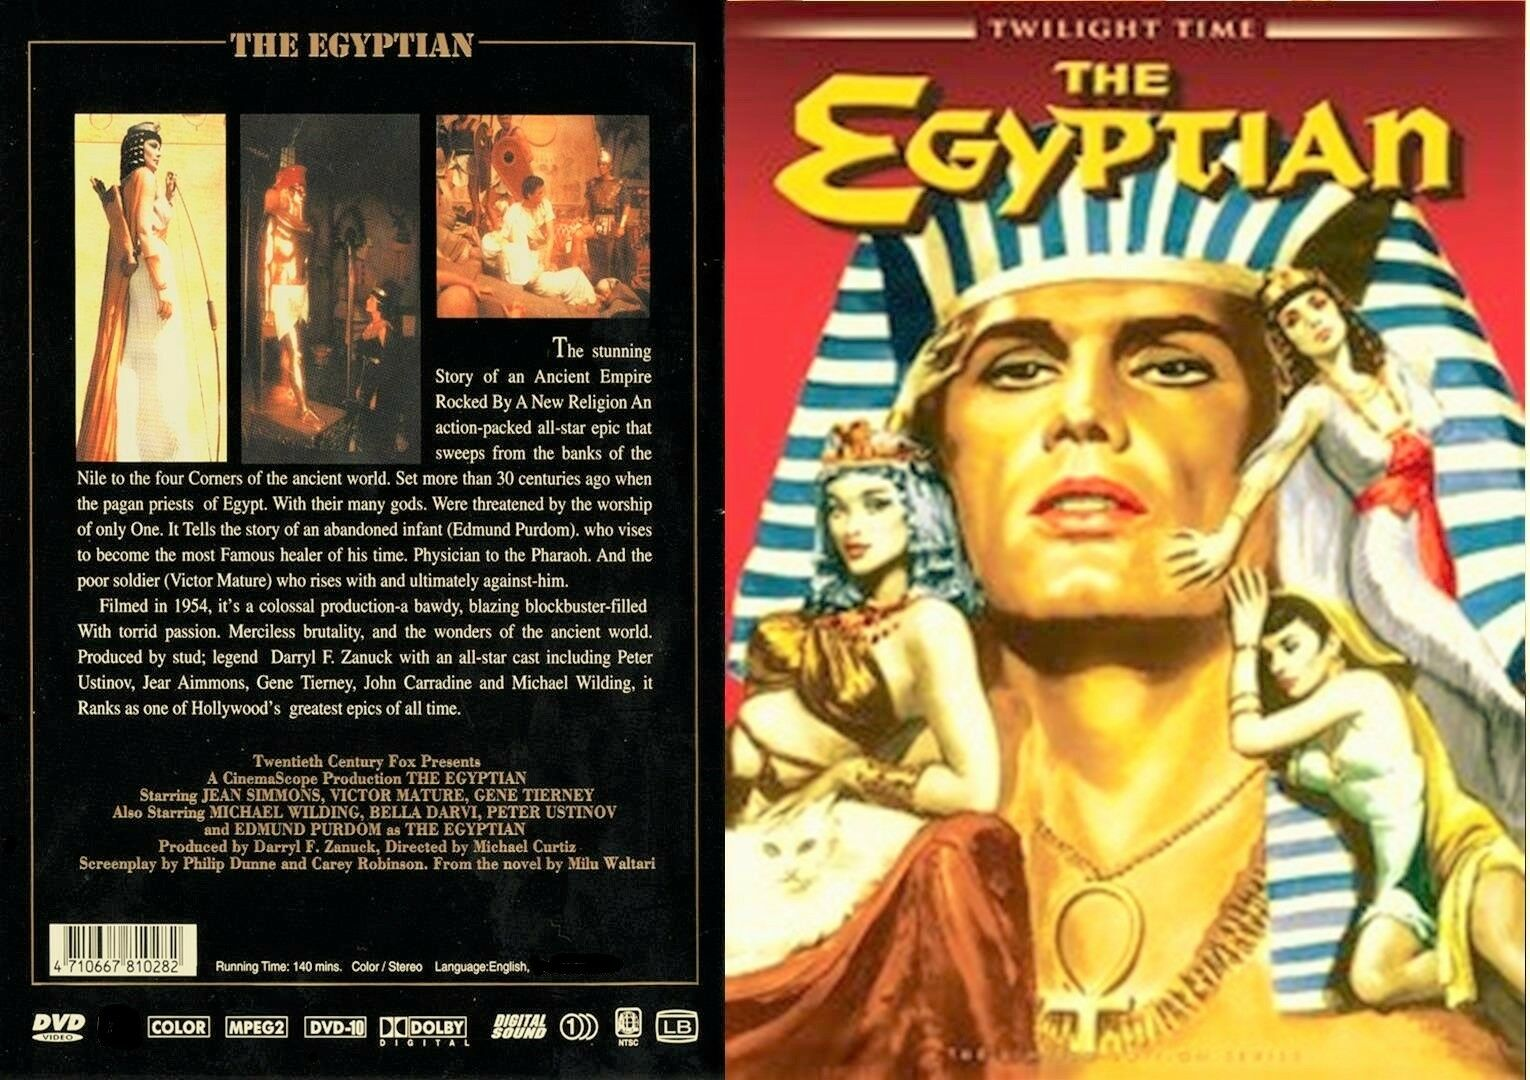 THE EGYPTIAN (1954) Victor Mature / DVD Twilight Times